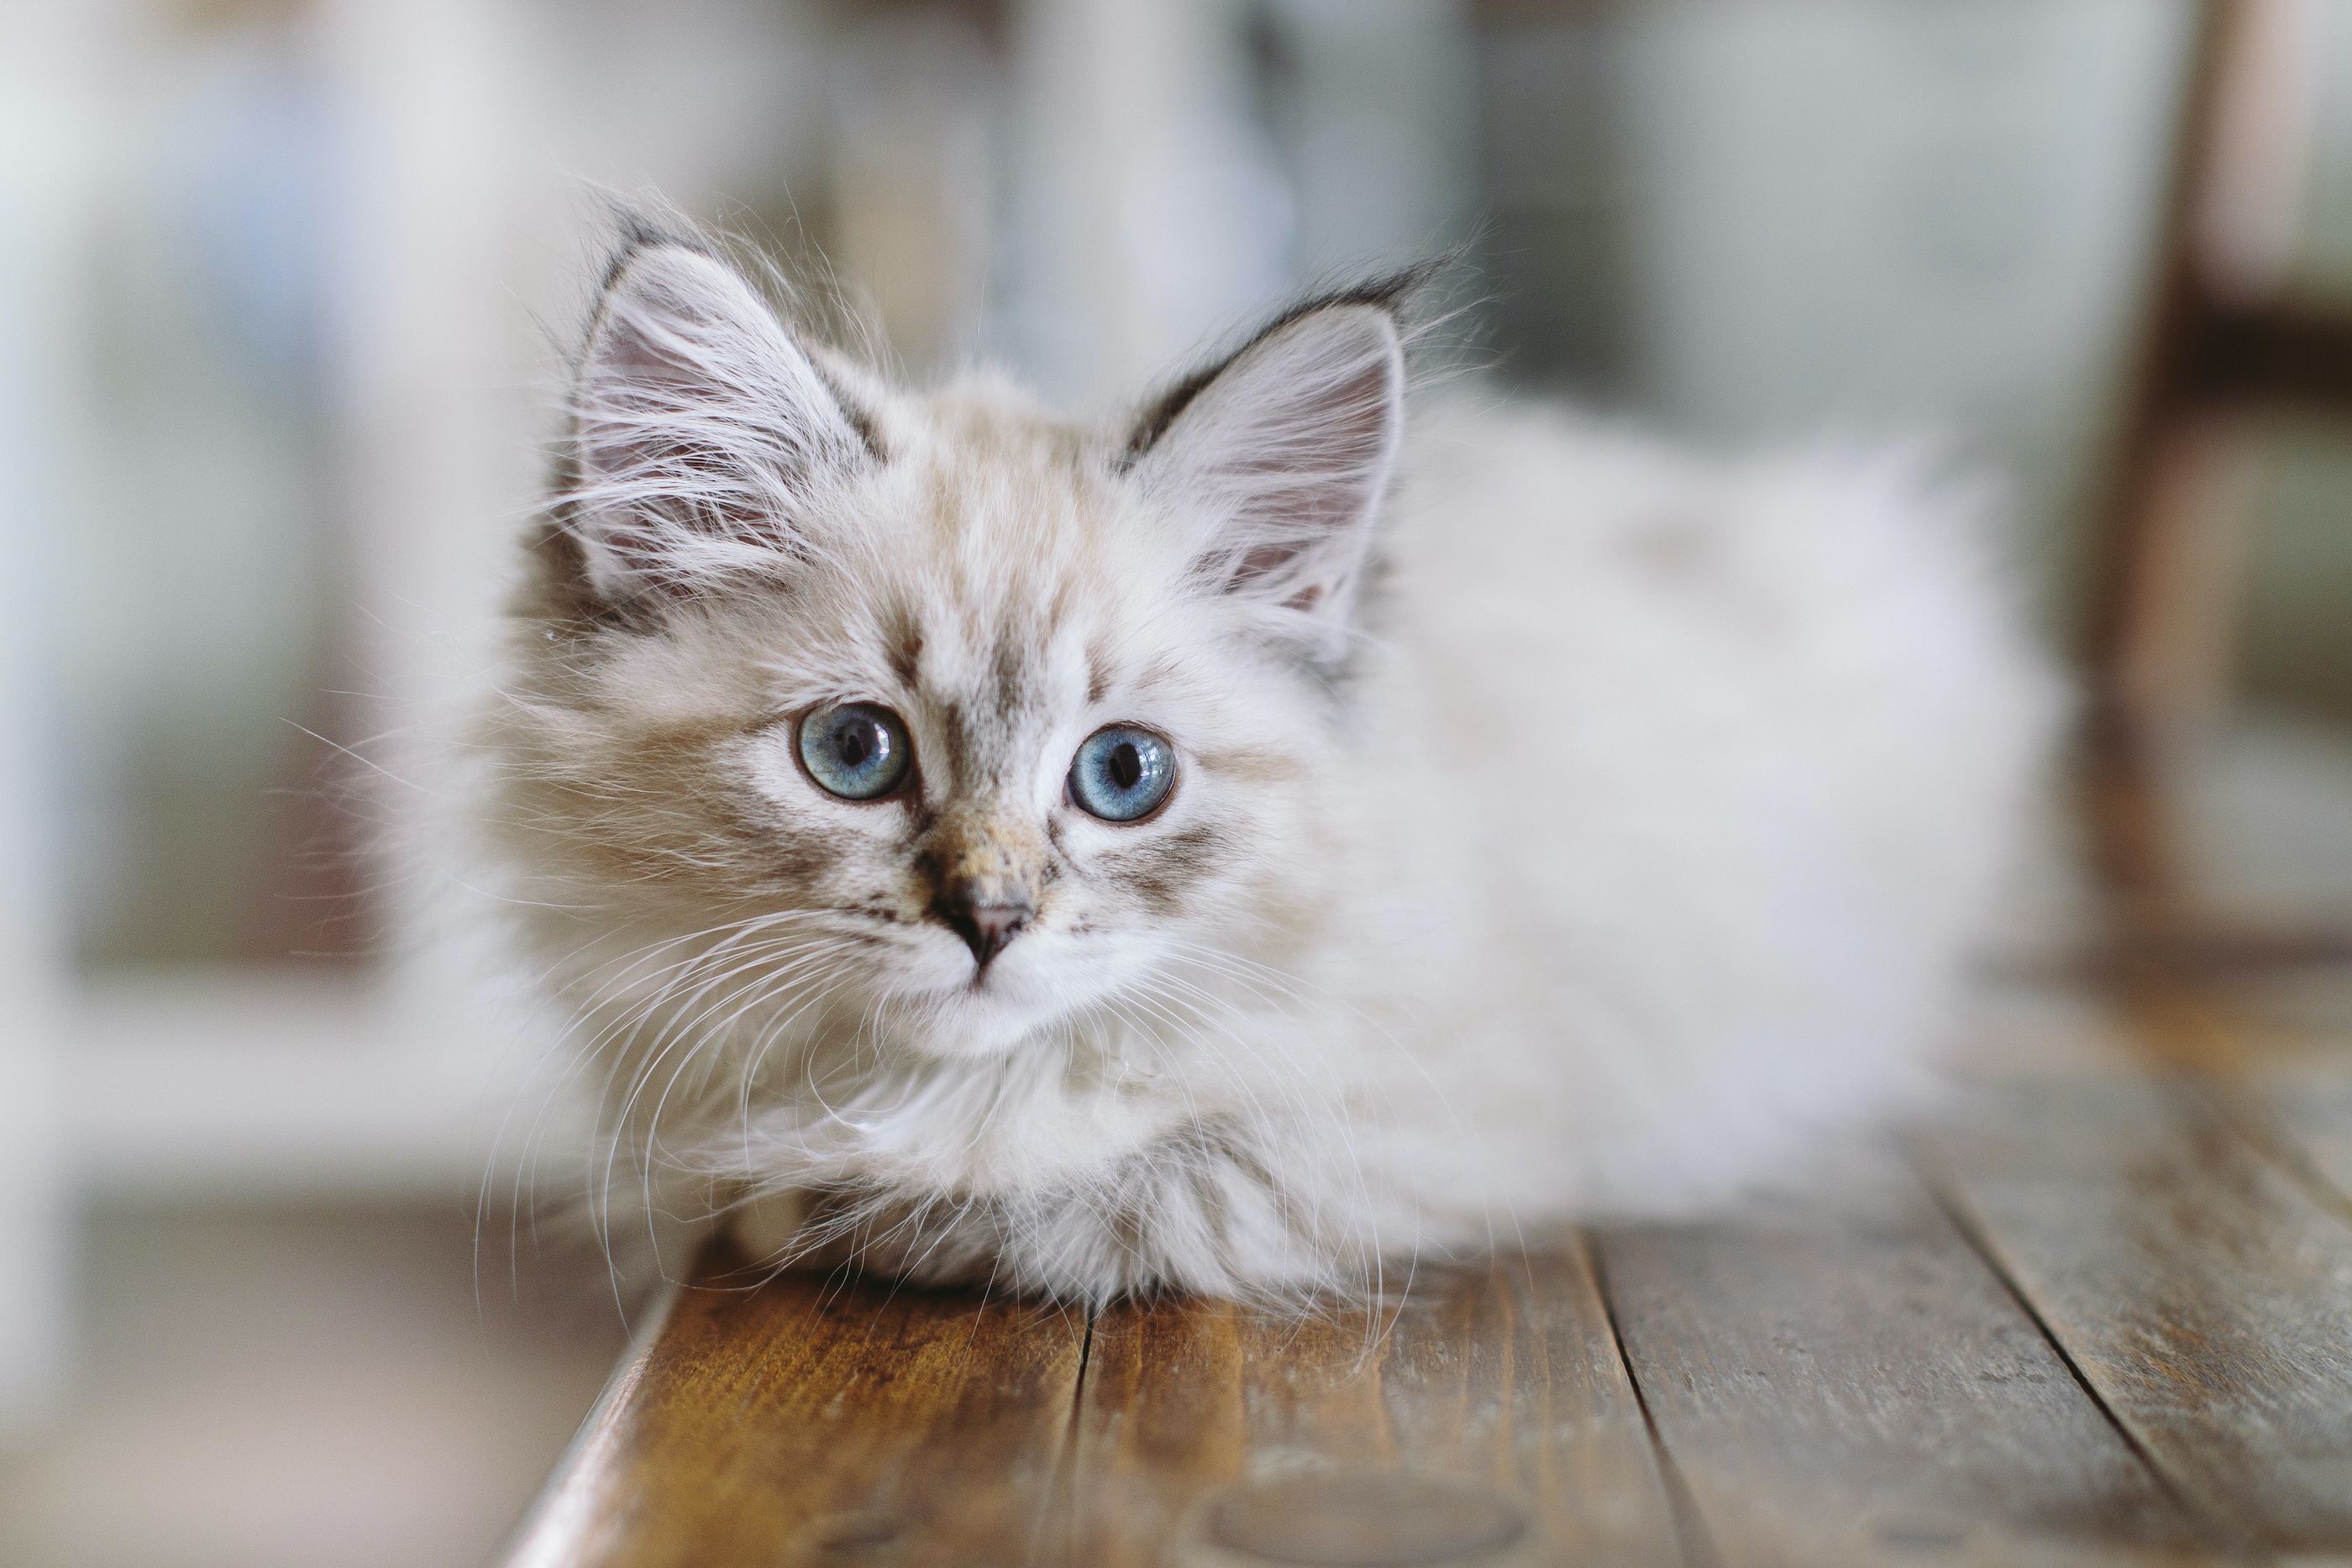 white kitten with blue eyes sitting on a hardwood floor looking away from the camera